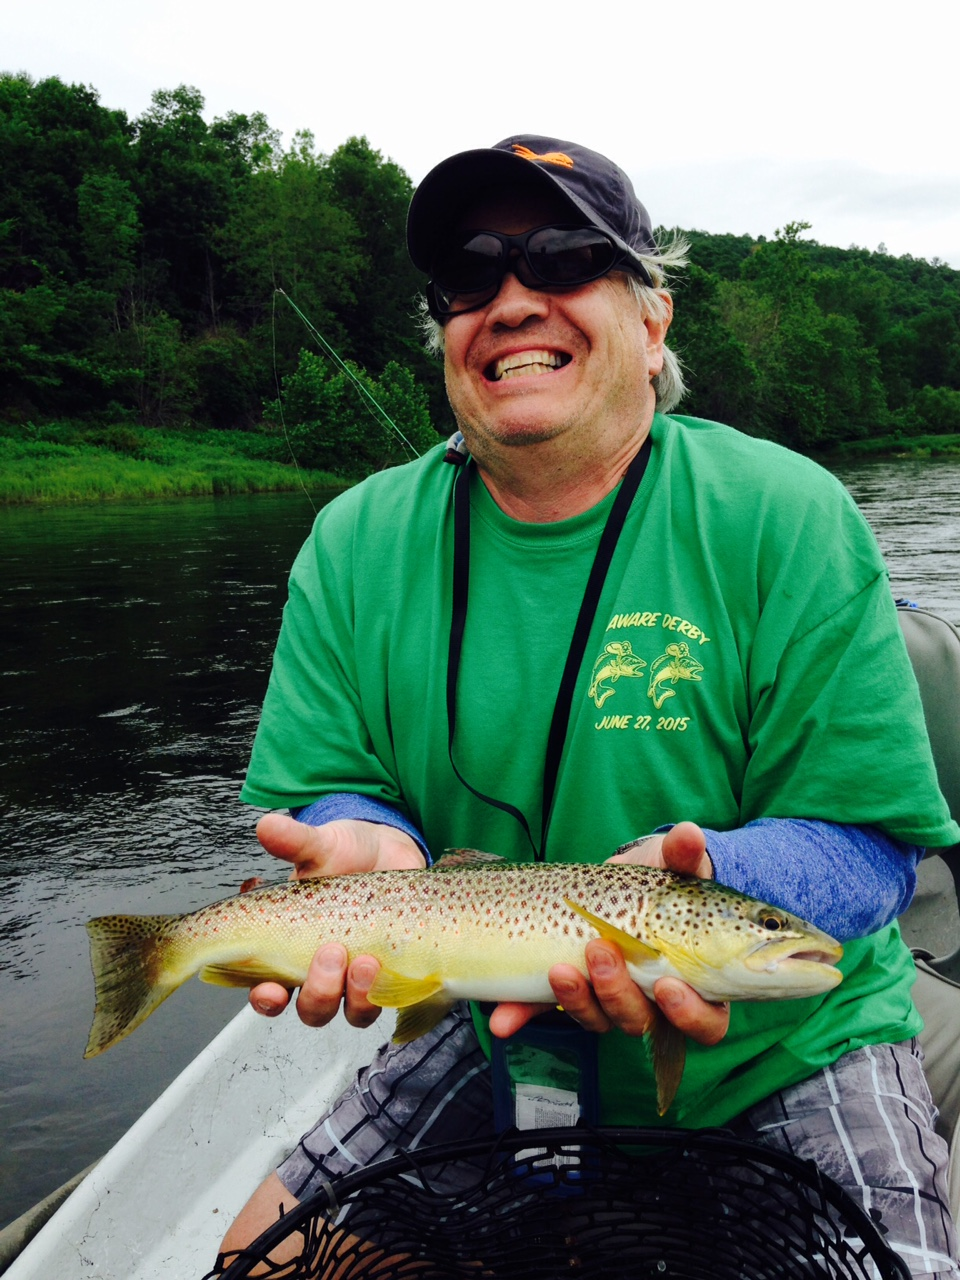 6/20/15 Frank A. with his first Delaware River Brown trout!